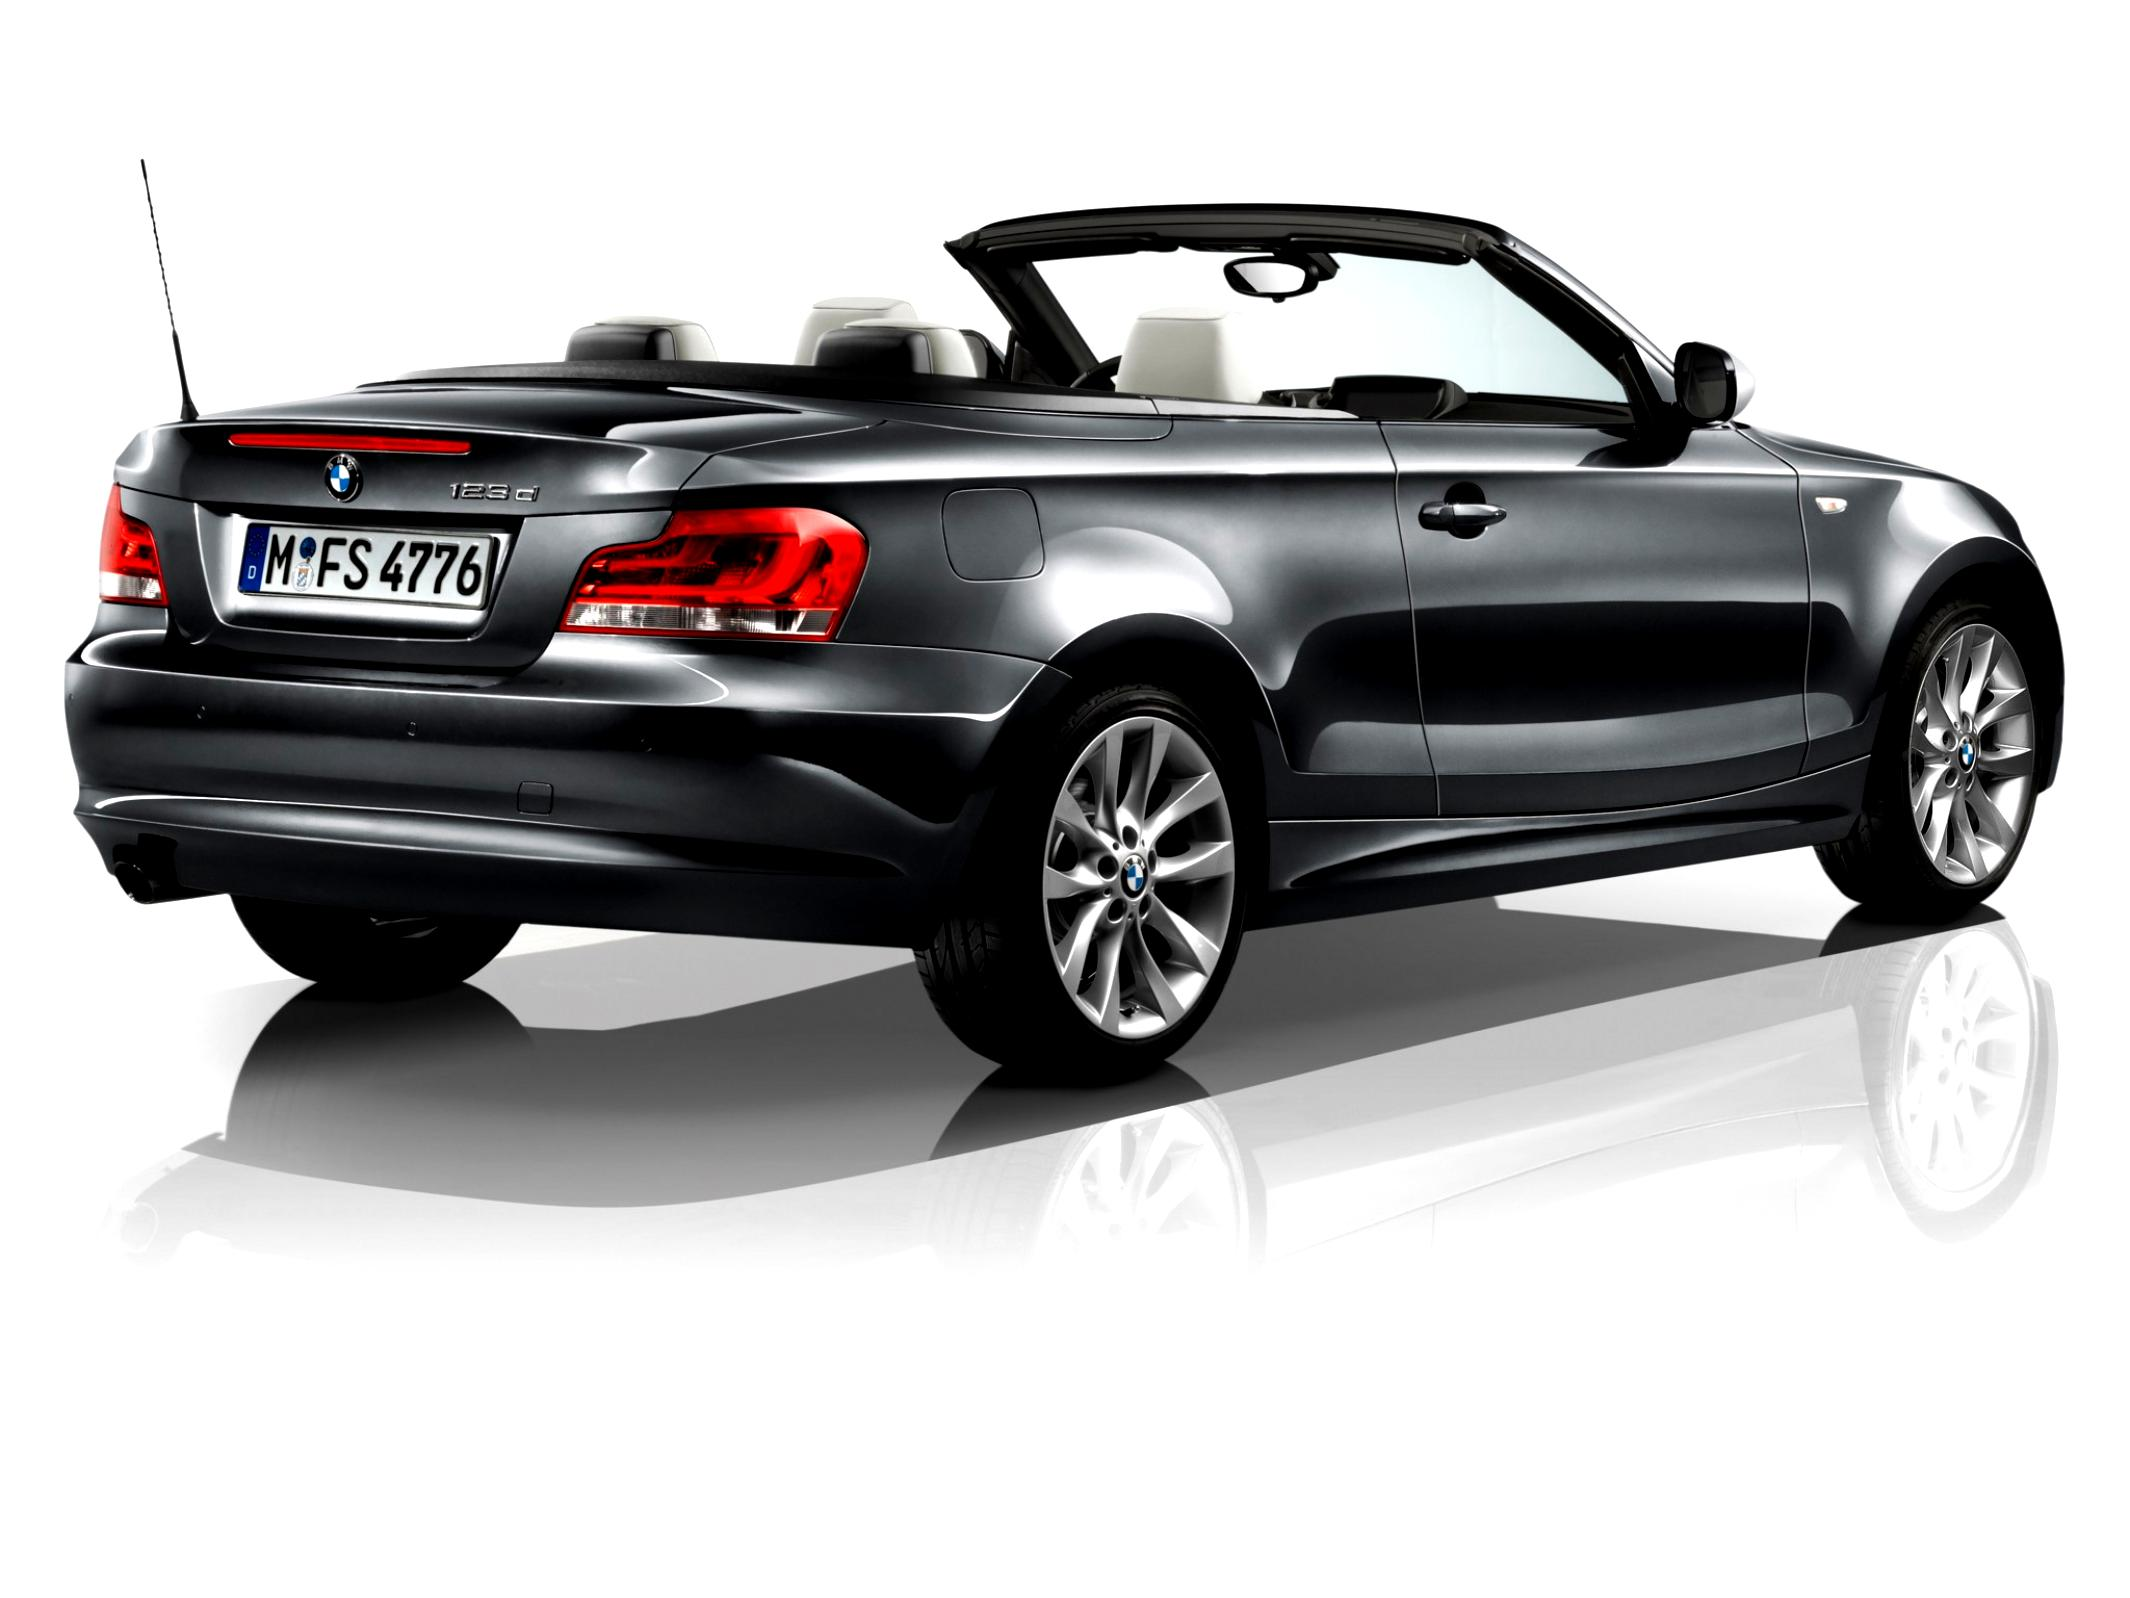 BMW 1 Series Cabriolet E88 2010 #13